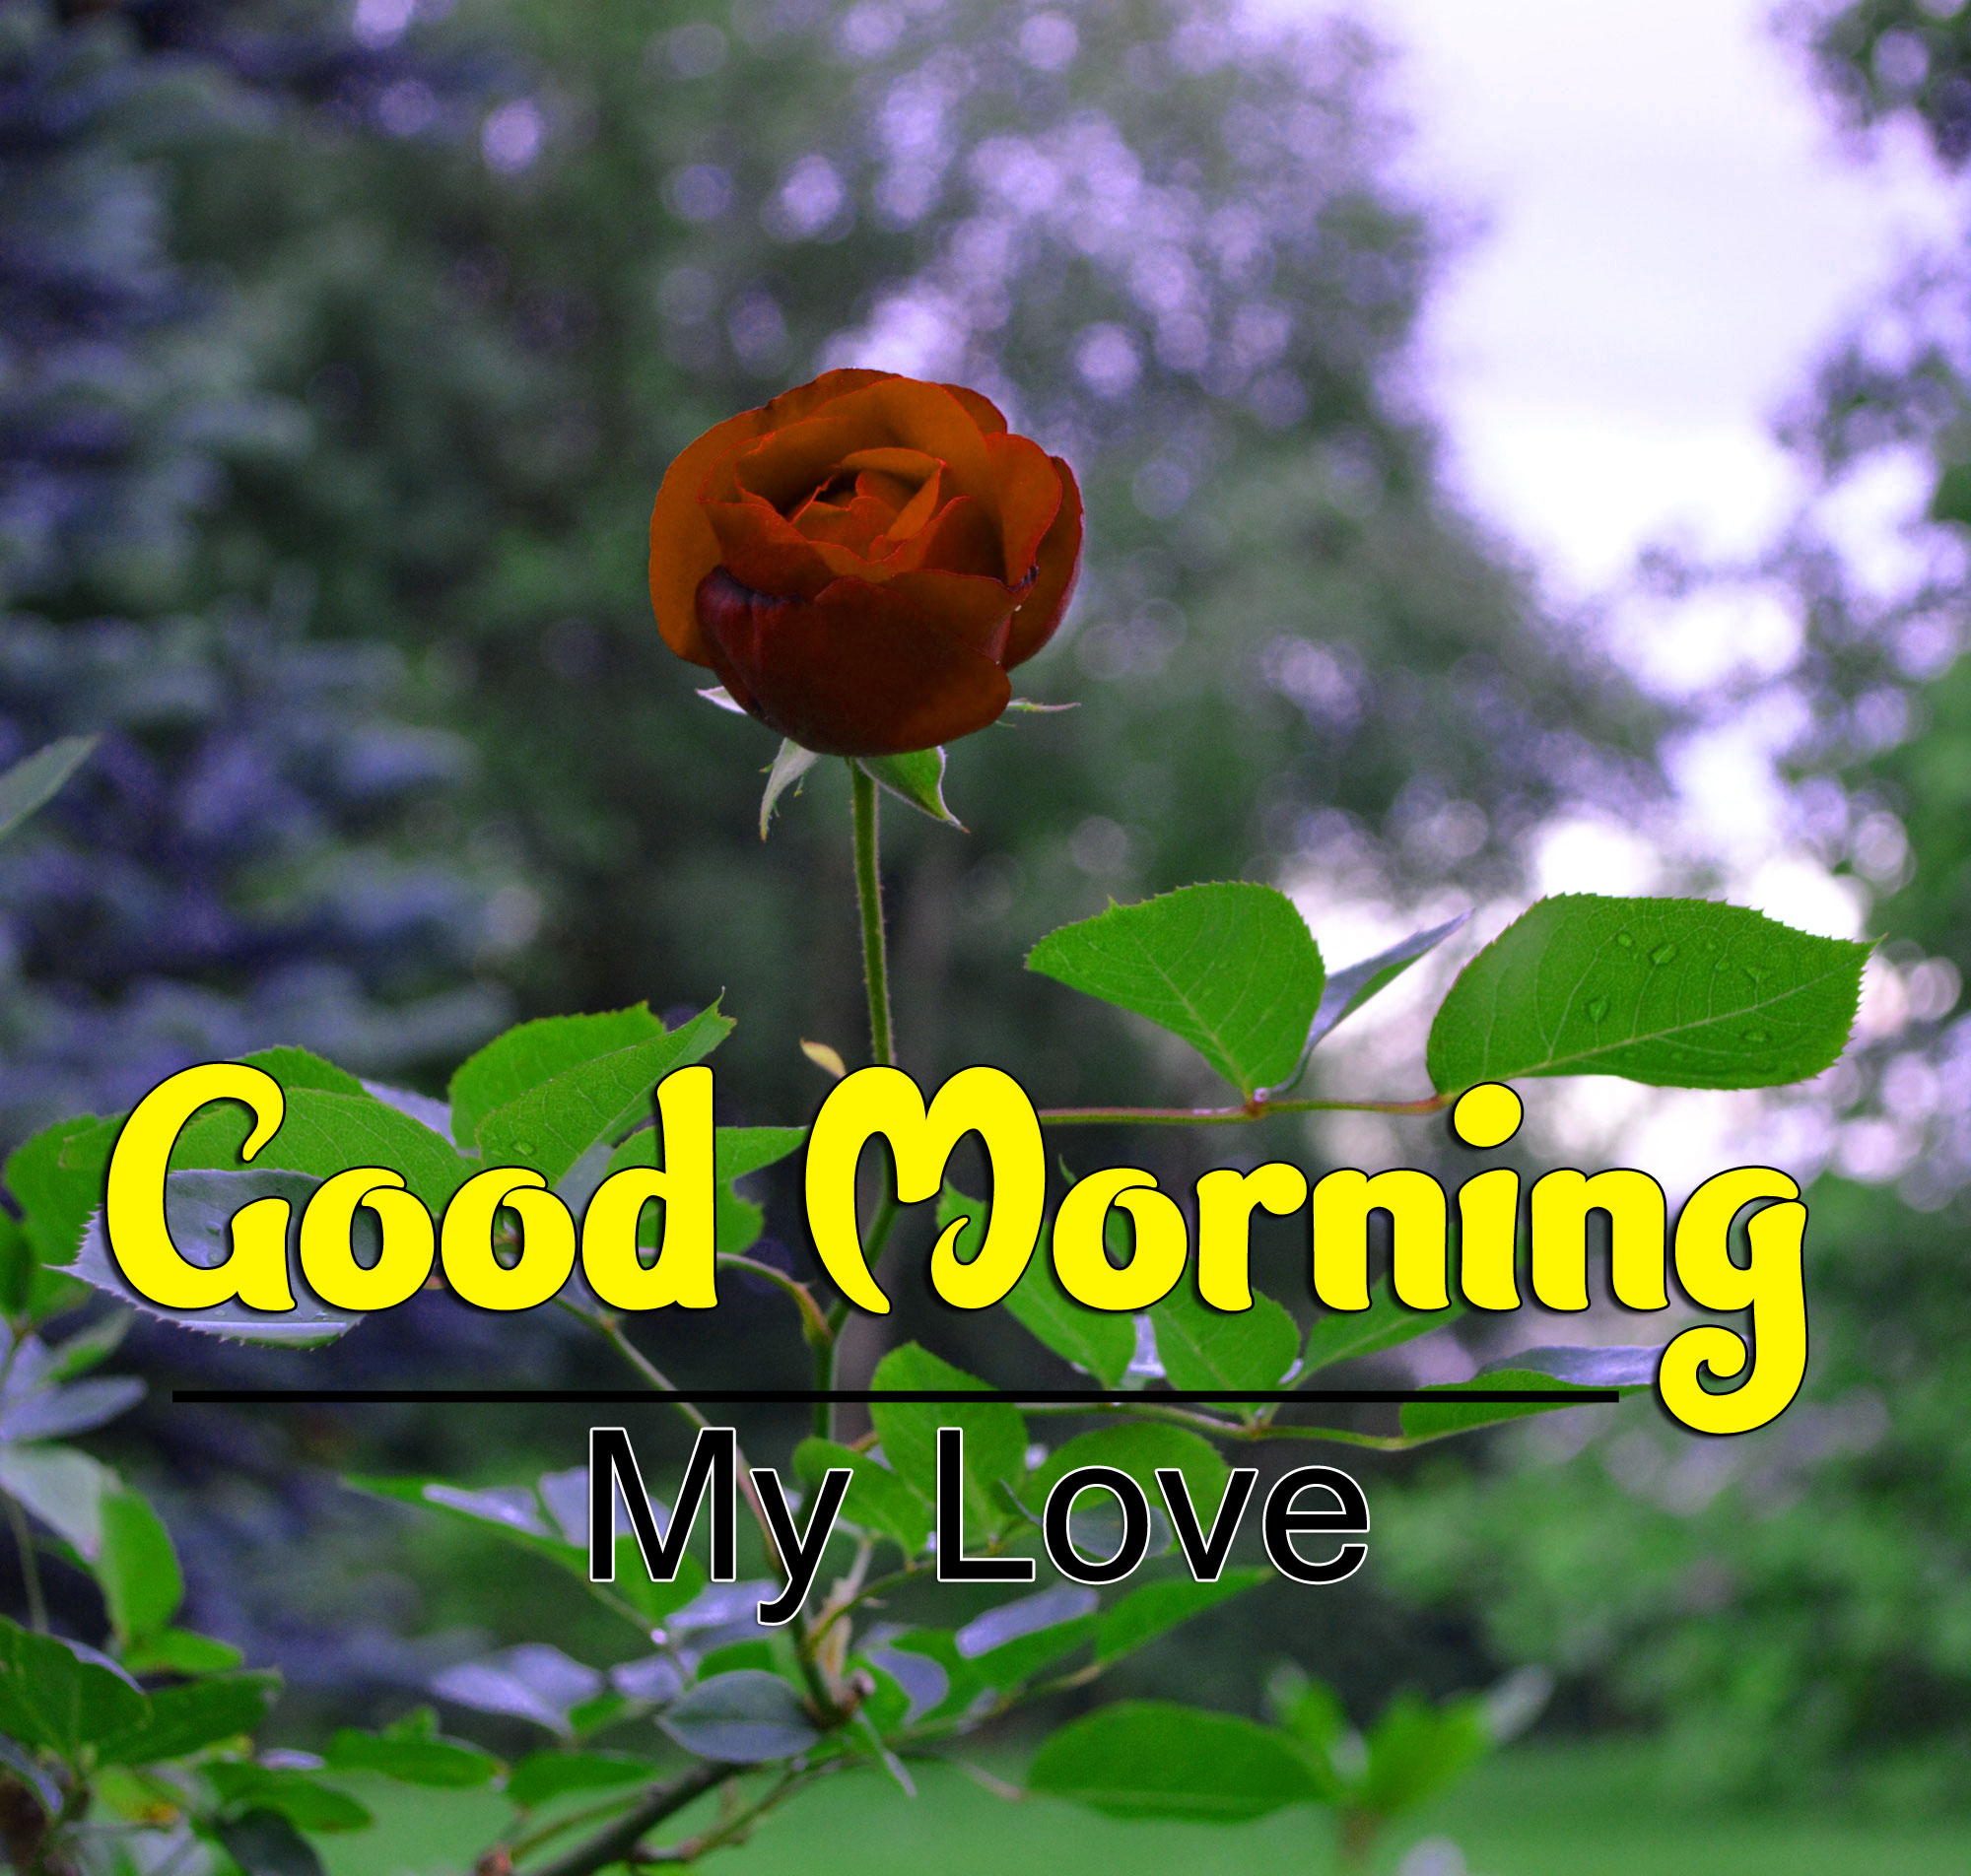 Best HD Good Morning Wishes Pics Free Download